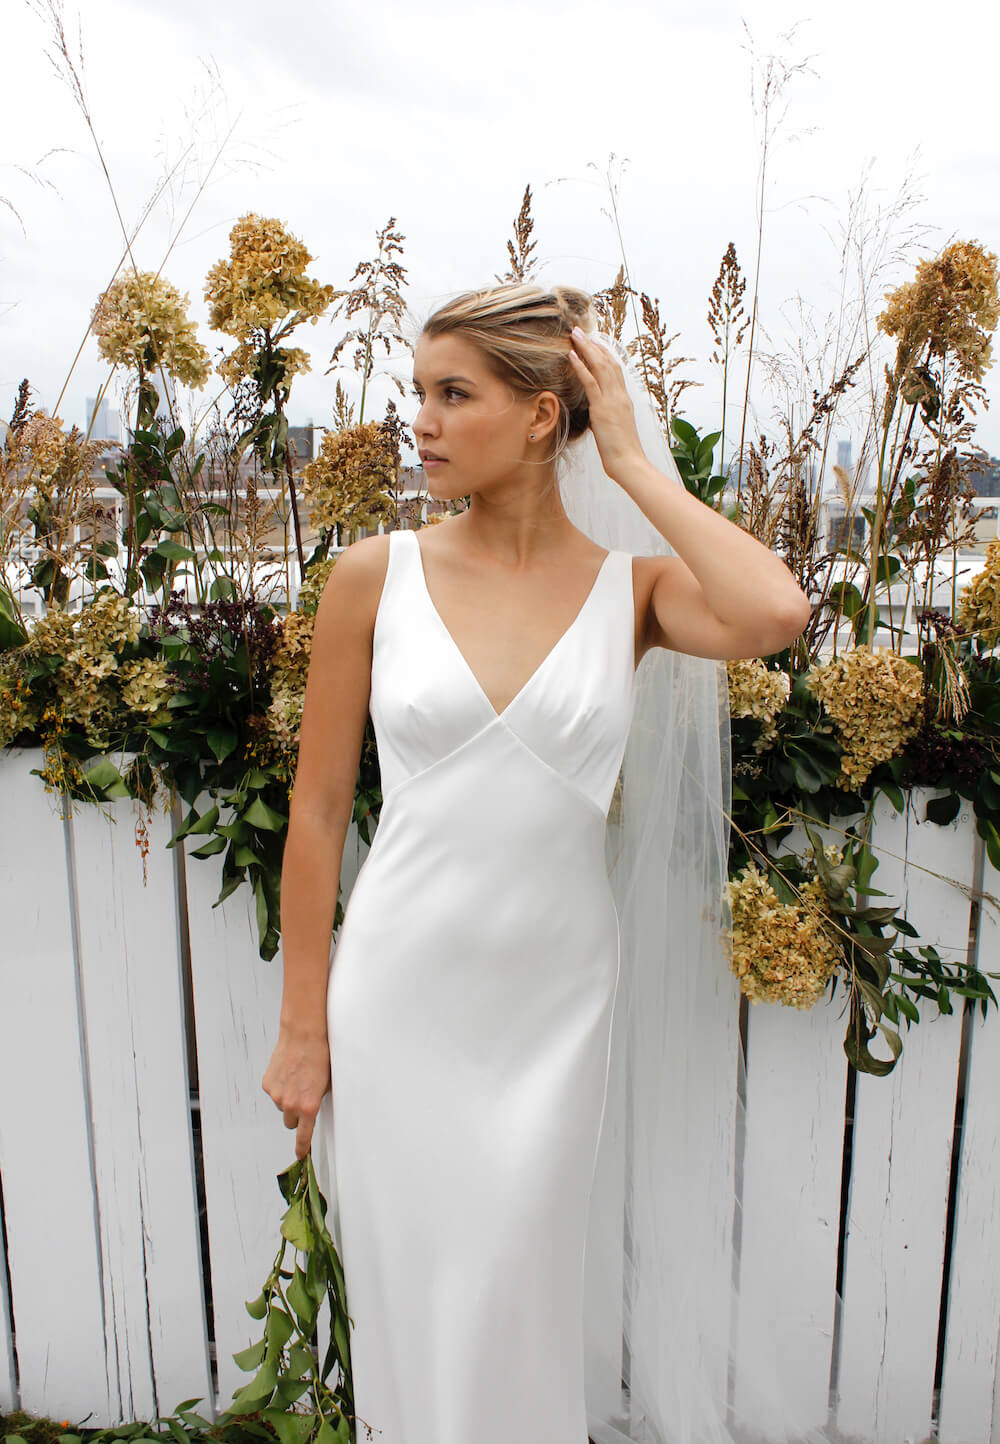 Entice wedding dress by Fiona Claire featured on LOVE FIND CO.